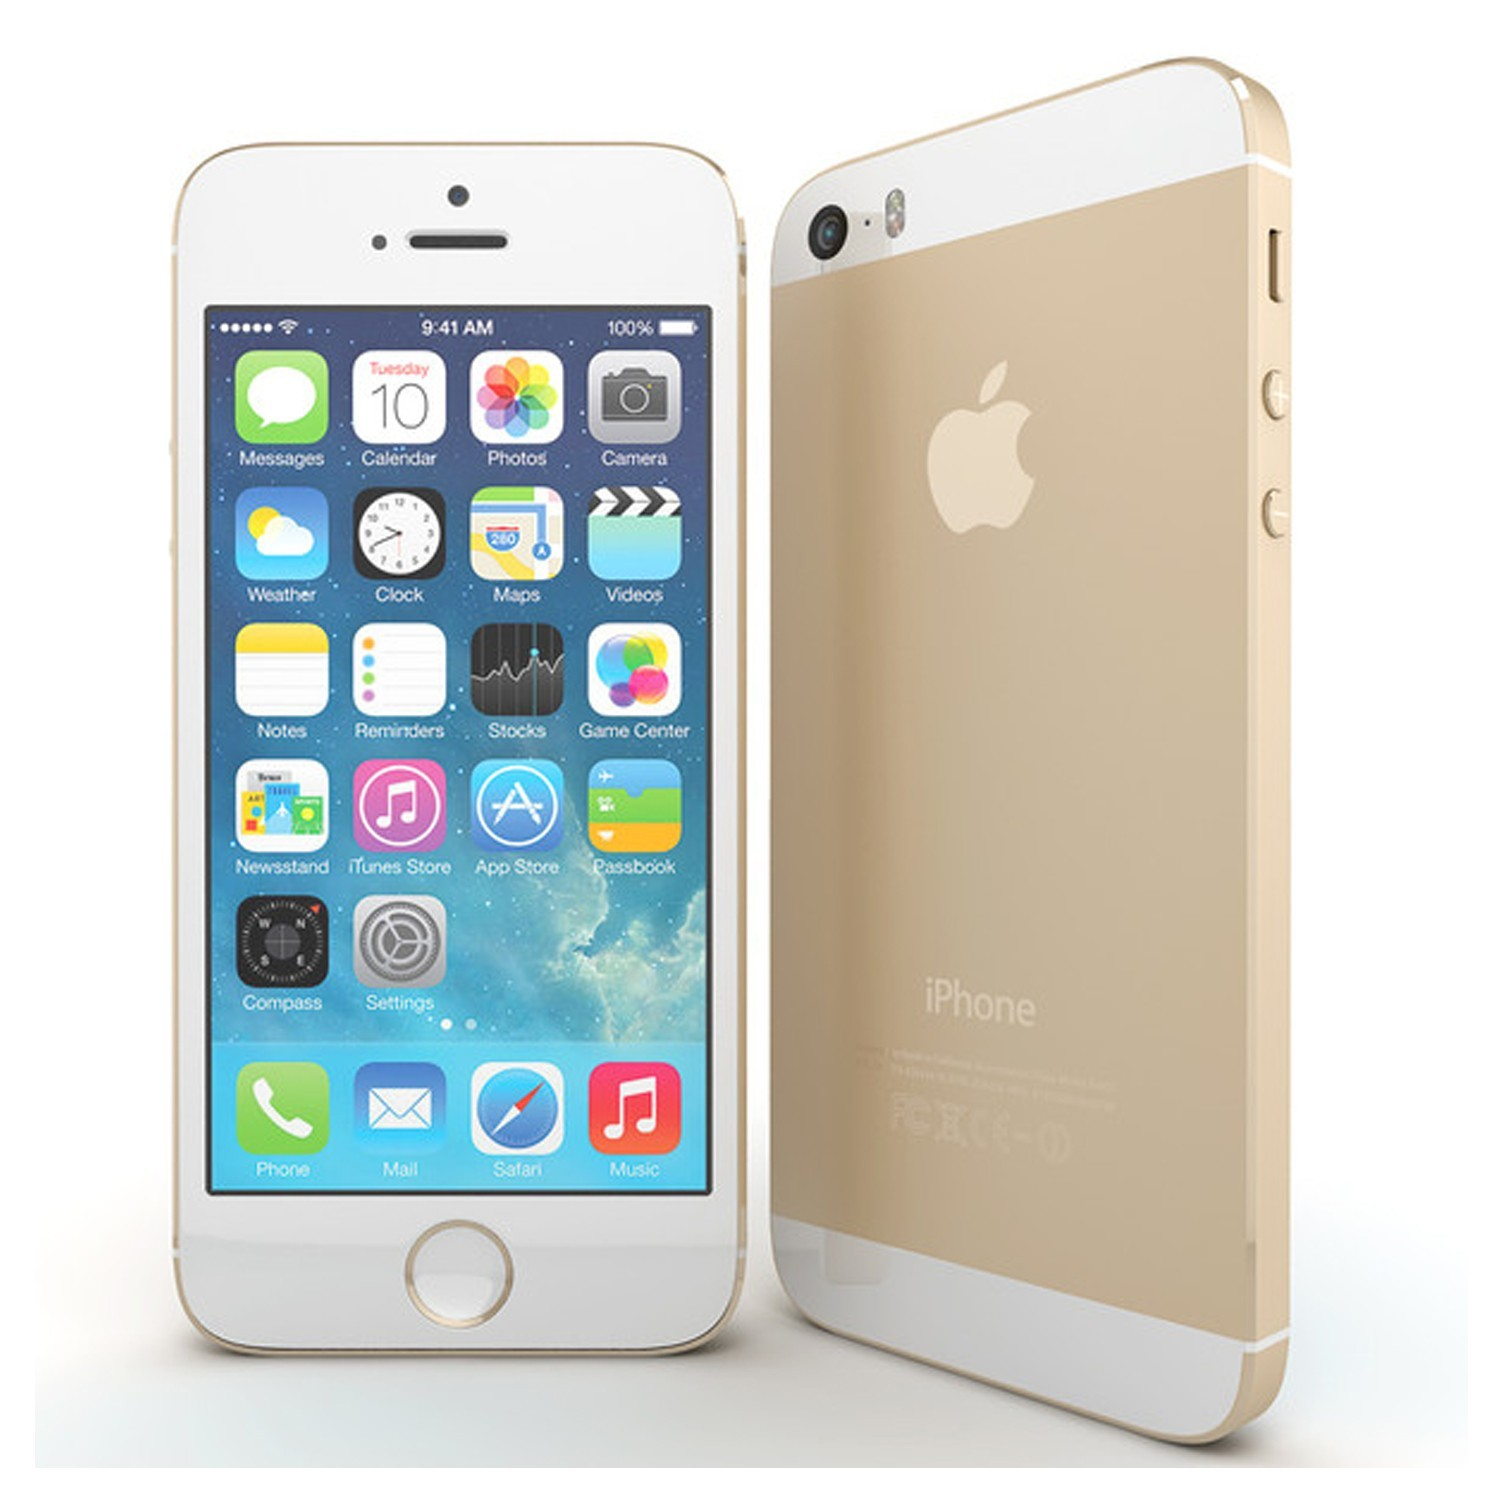 iphone 5s 64 gb apple iphone 5s 16gb gold factory gsm unlocked smartphone 2044